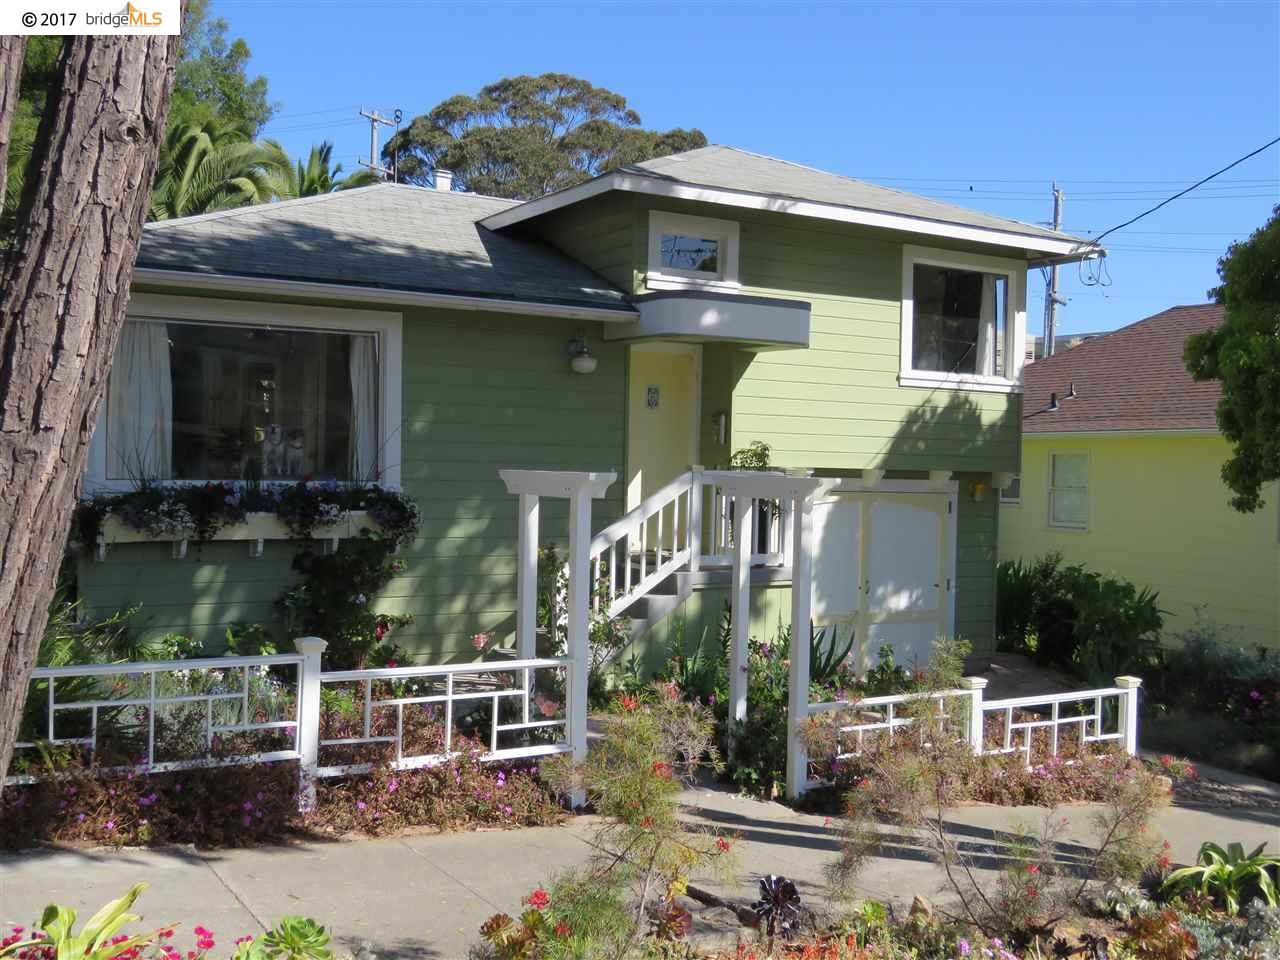 Casa Unifamiliar por un Venta en 122 CASTRO STREET Point Richmond, California 94801 Estados Unidos